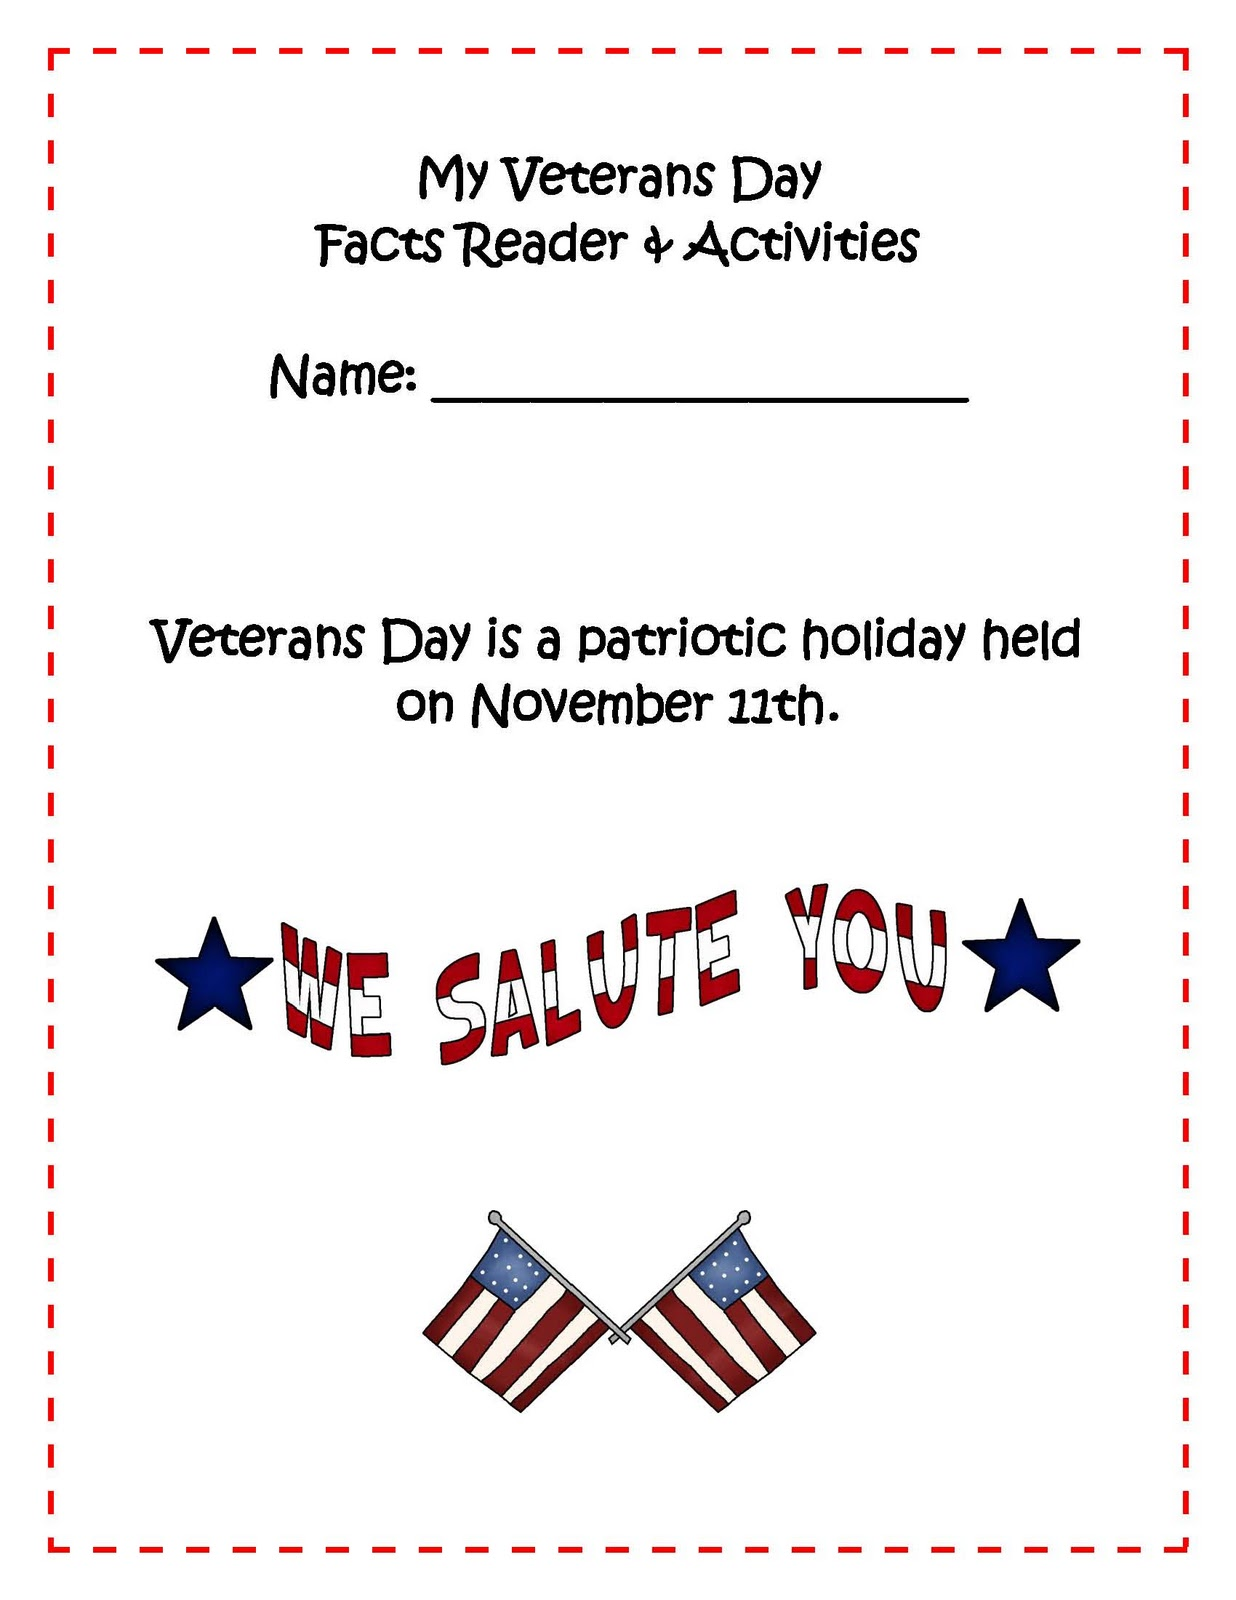 Free Veterans Day Math Worksheets super teacher worksheets has – Veterans Day Math Worksheets